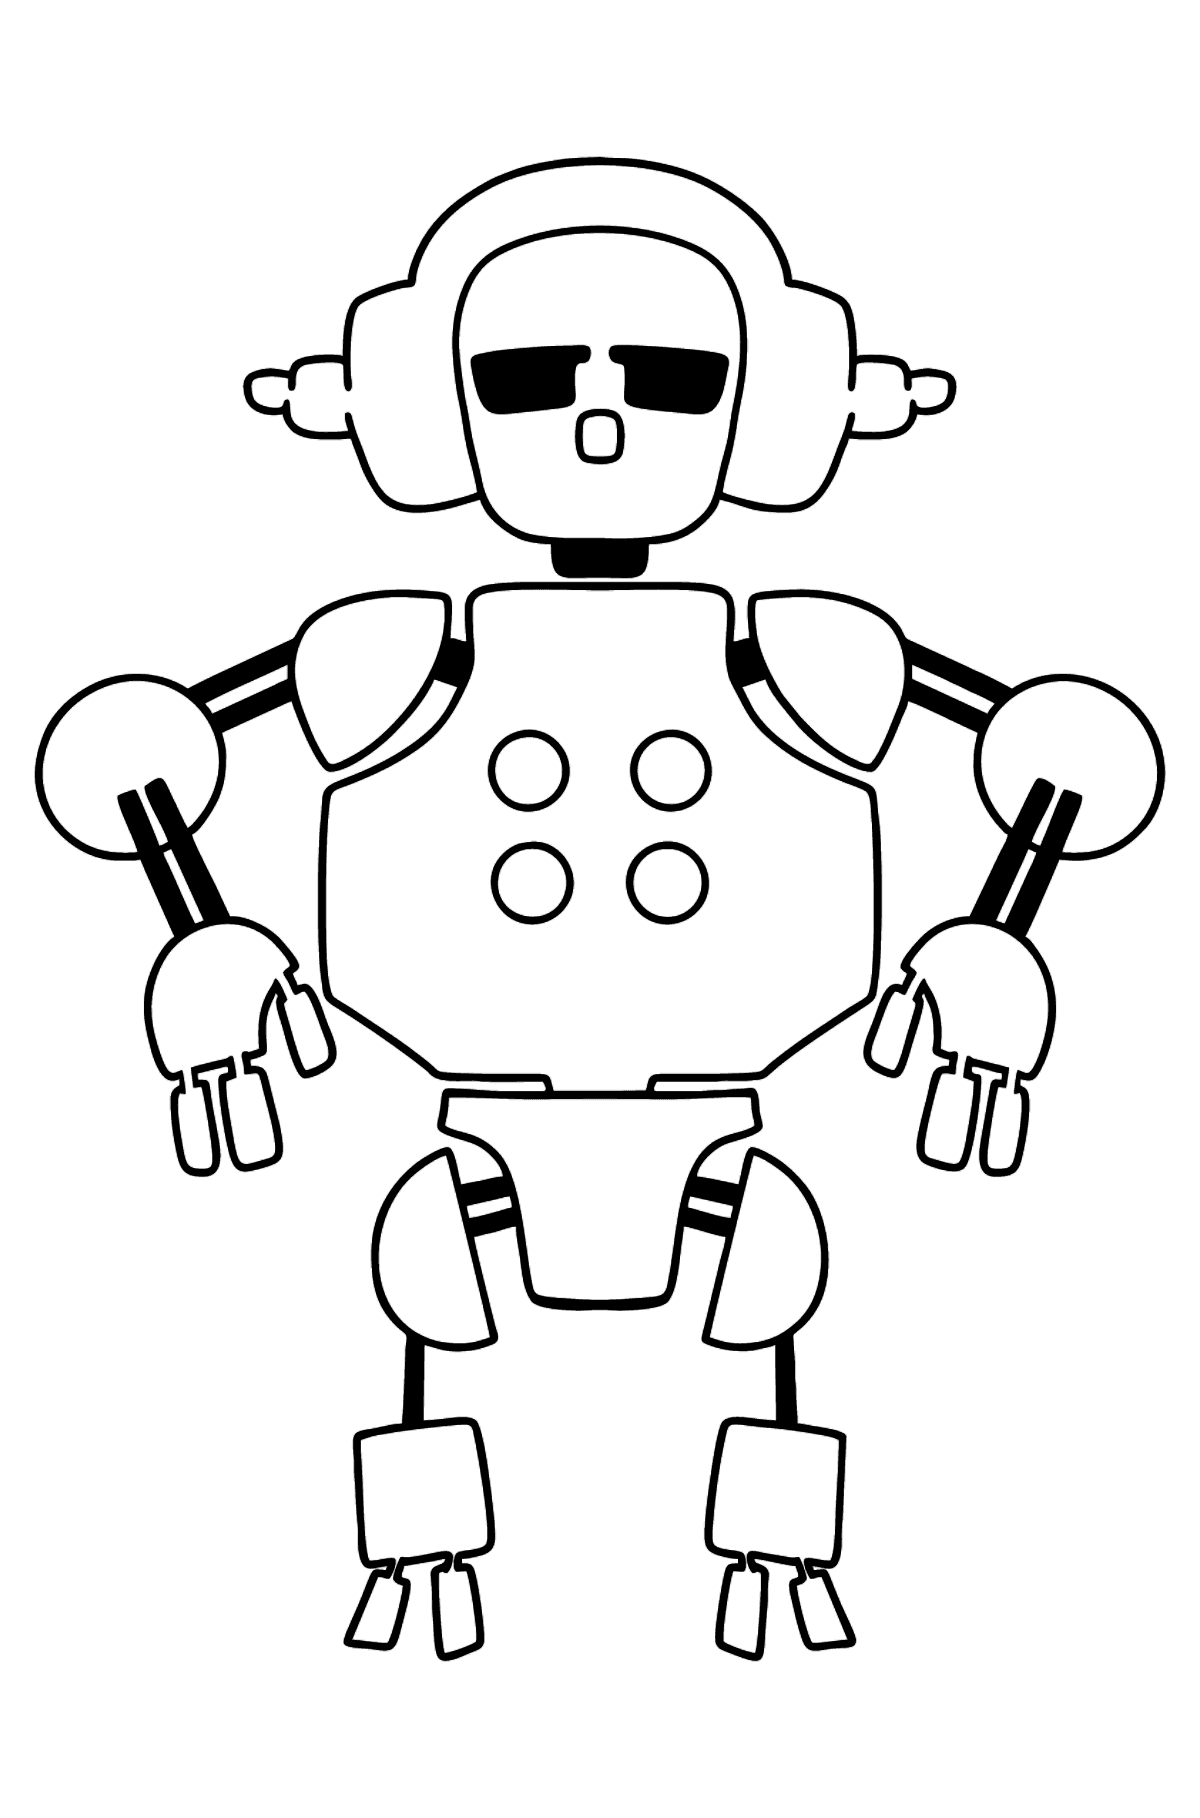 Robot with Headphones coloring page - Coloring Pages for Kids